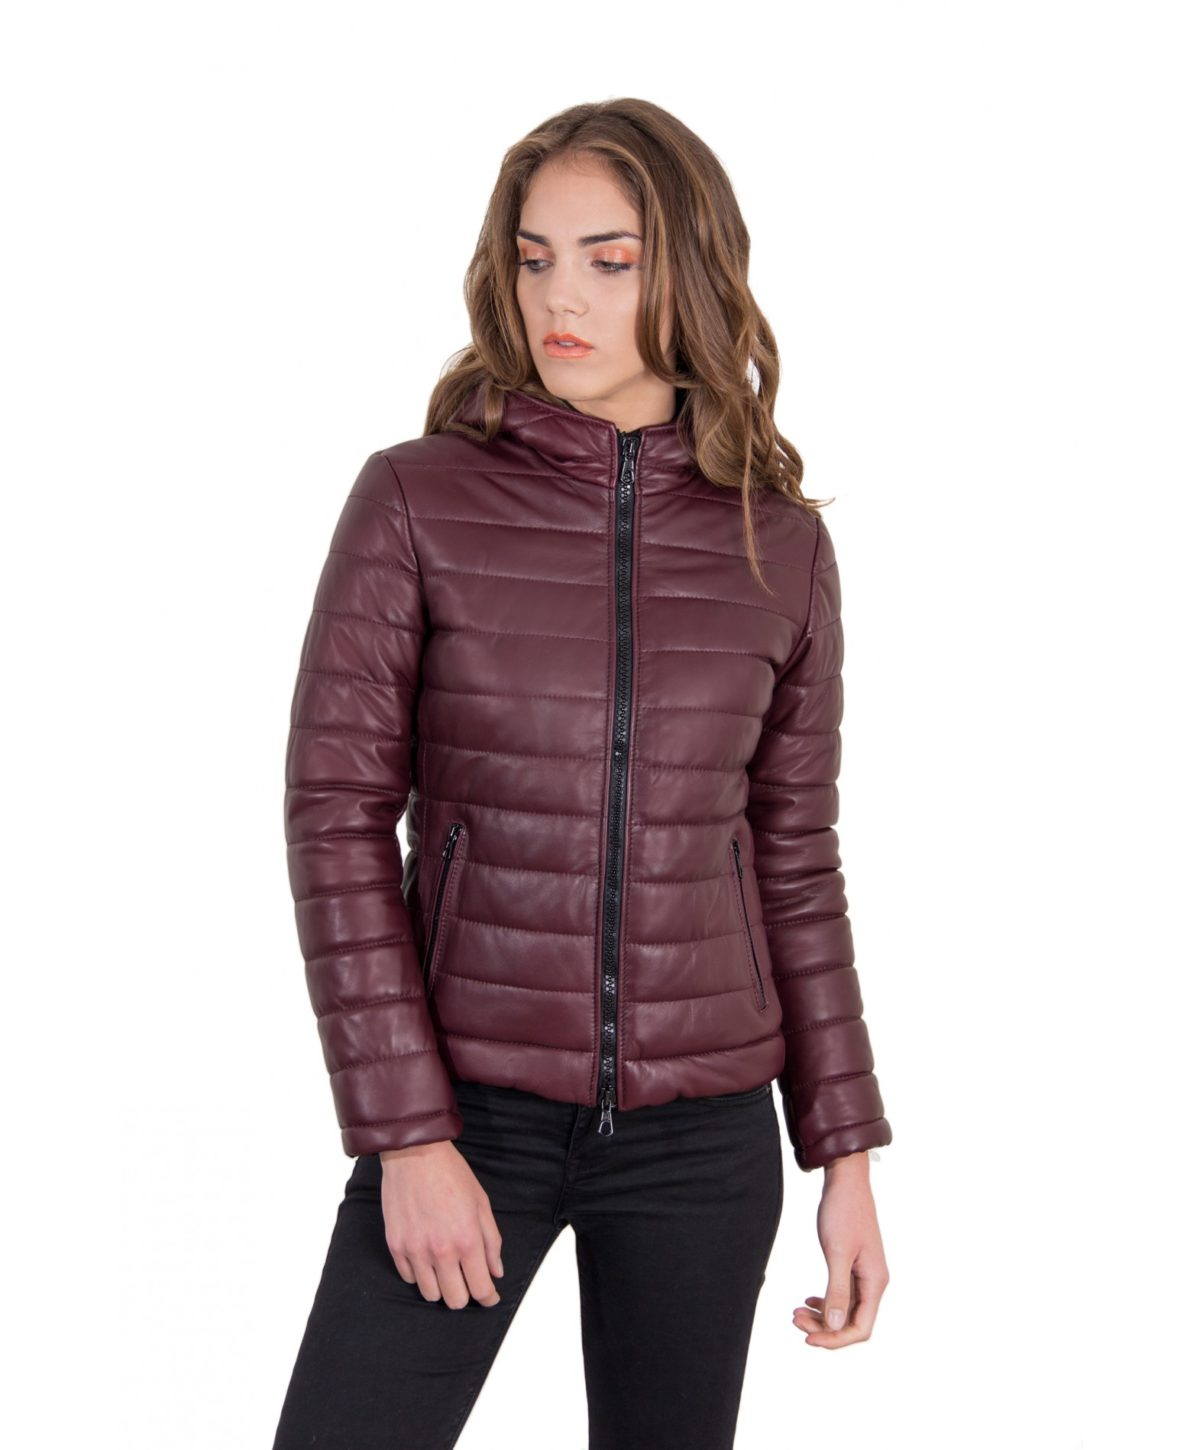 elsa-red-purple-color-nappa-lamb-leather-down-jacket-smooth-effect